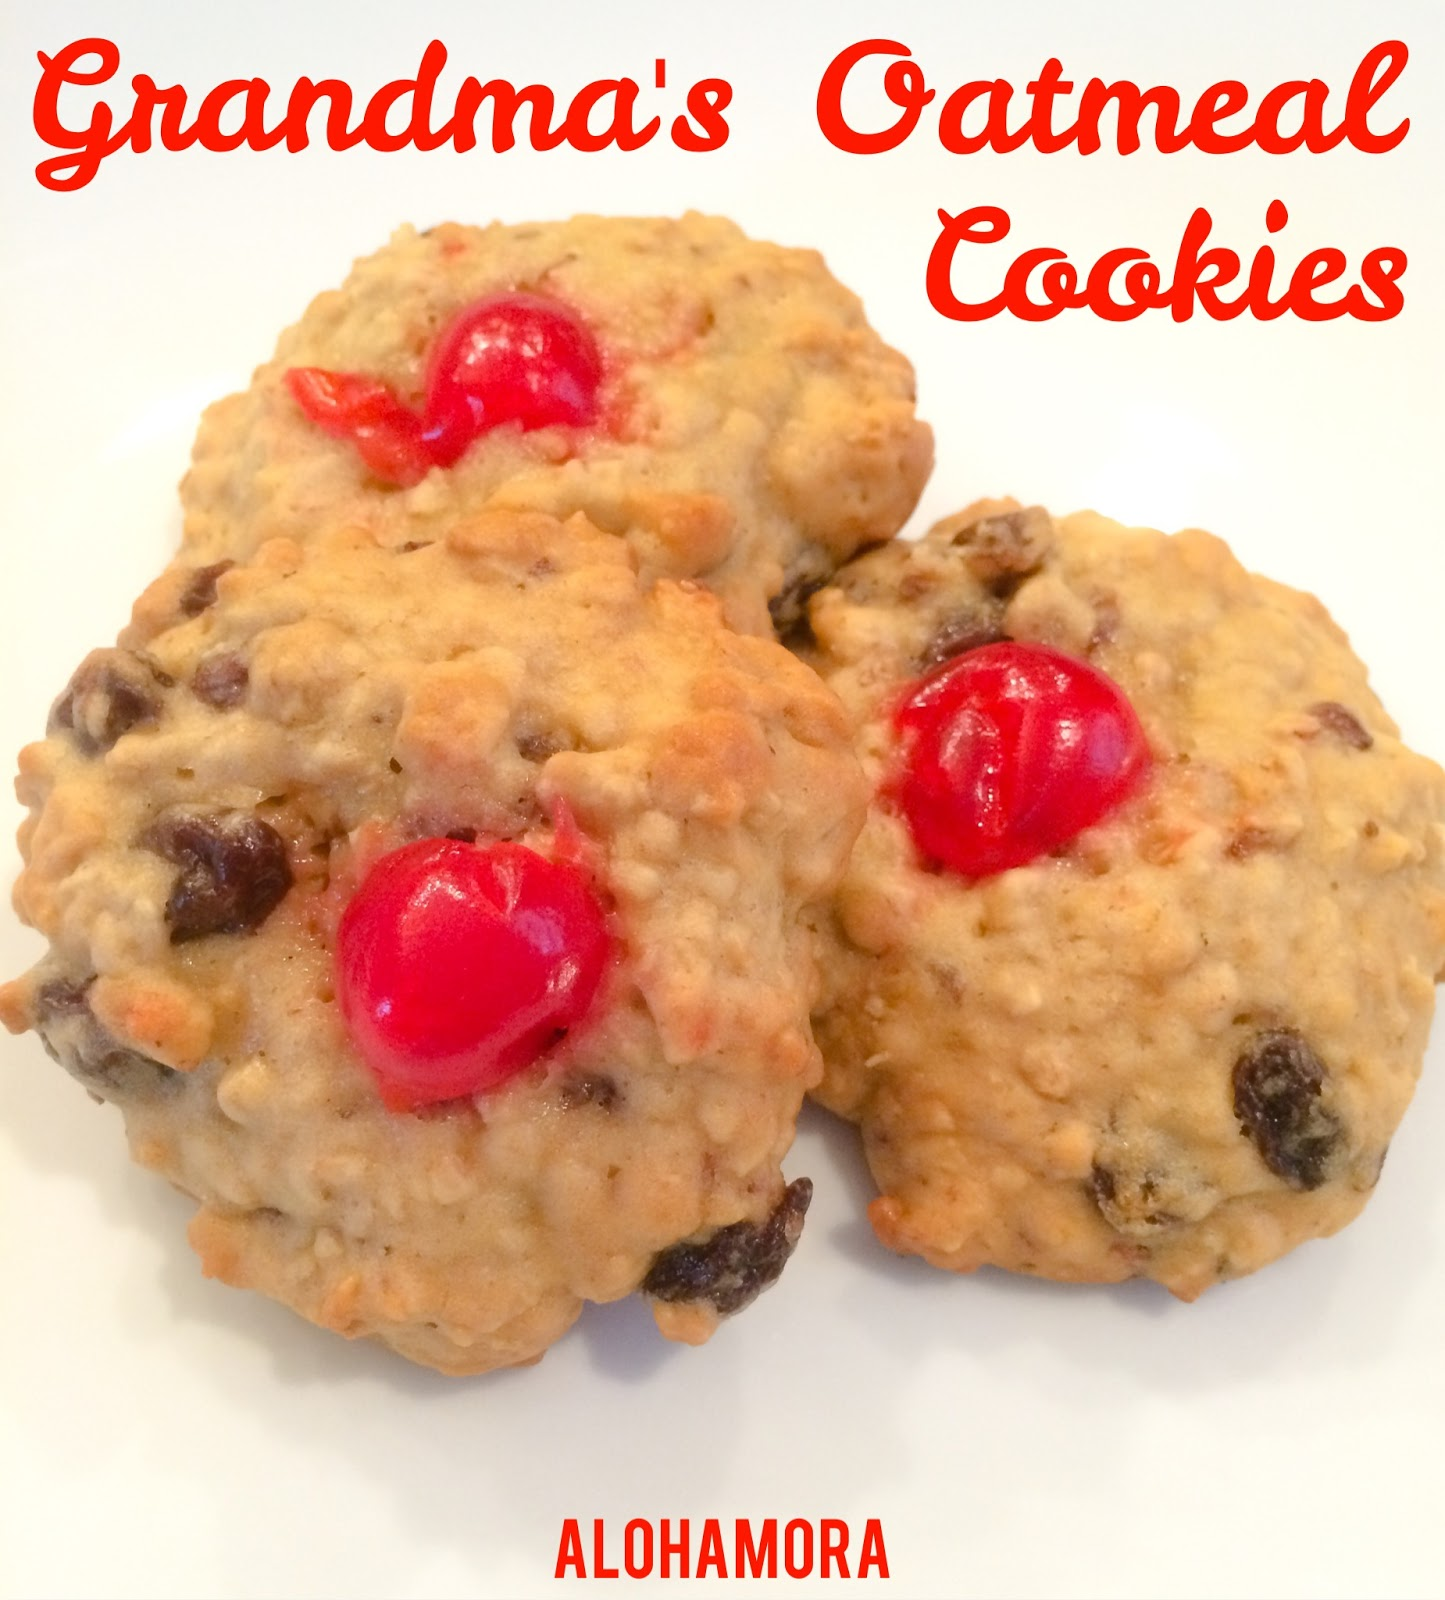 Grandma's Oatmeal Cookies are old school cake like.  Filled with raisins and has such an amazing flavor with a moist cookie the young and old enjoy.  Alohamora Open a Book http://www.alohamoraopenabook.blogspot.com/